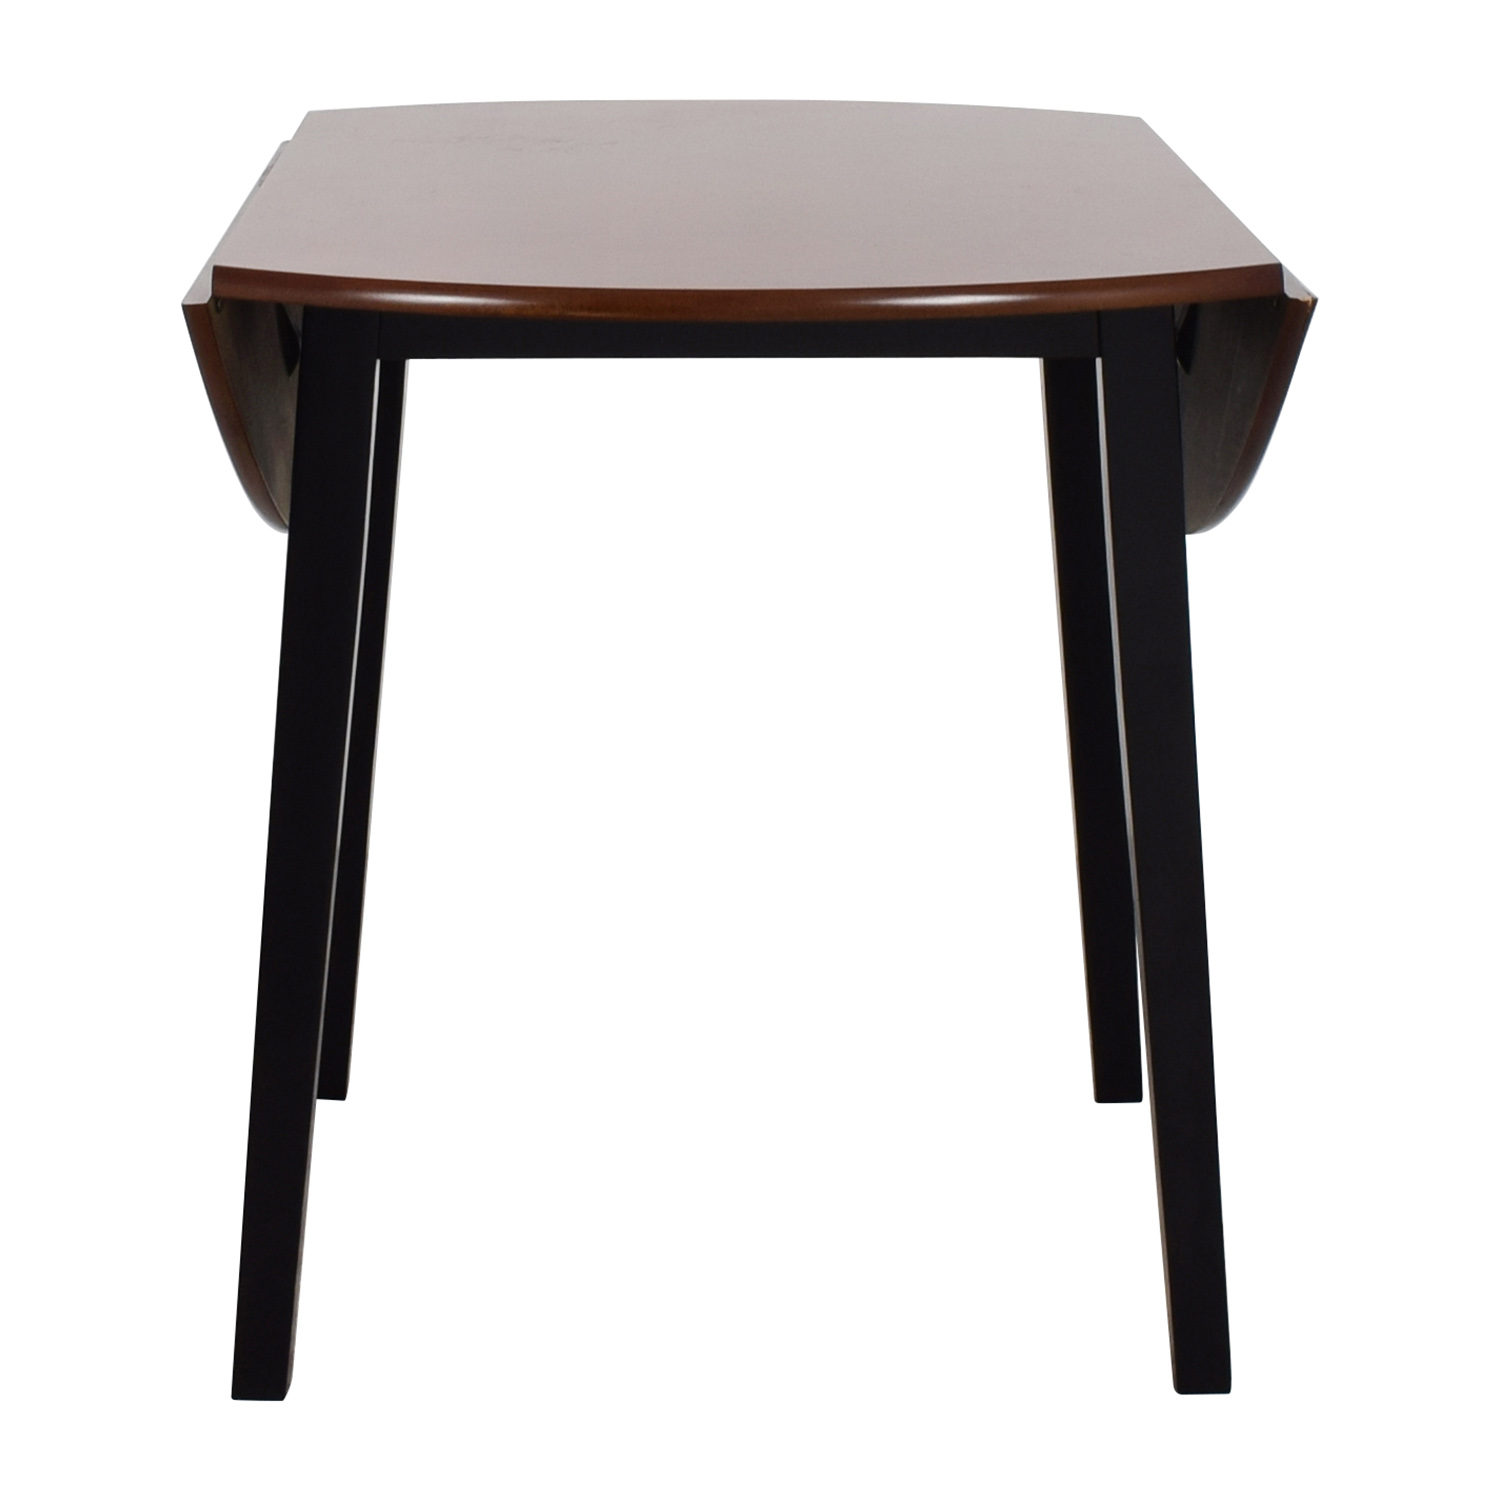 Bobs Furniture Bobs Furniture Brown Wood Round Kitchen Table discount